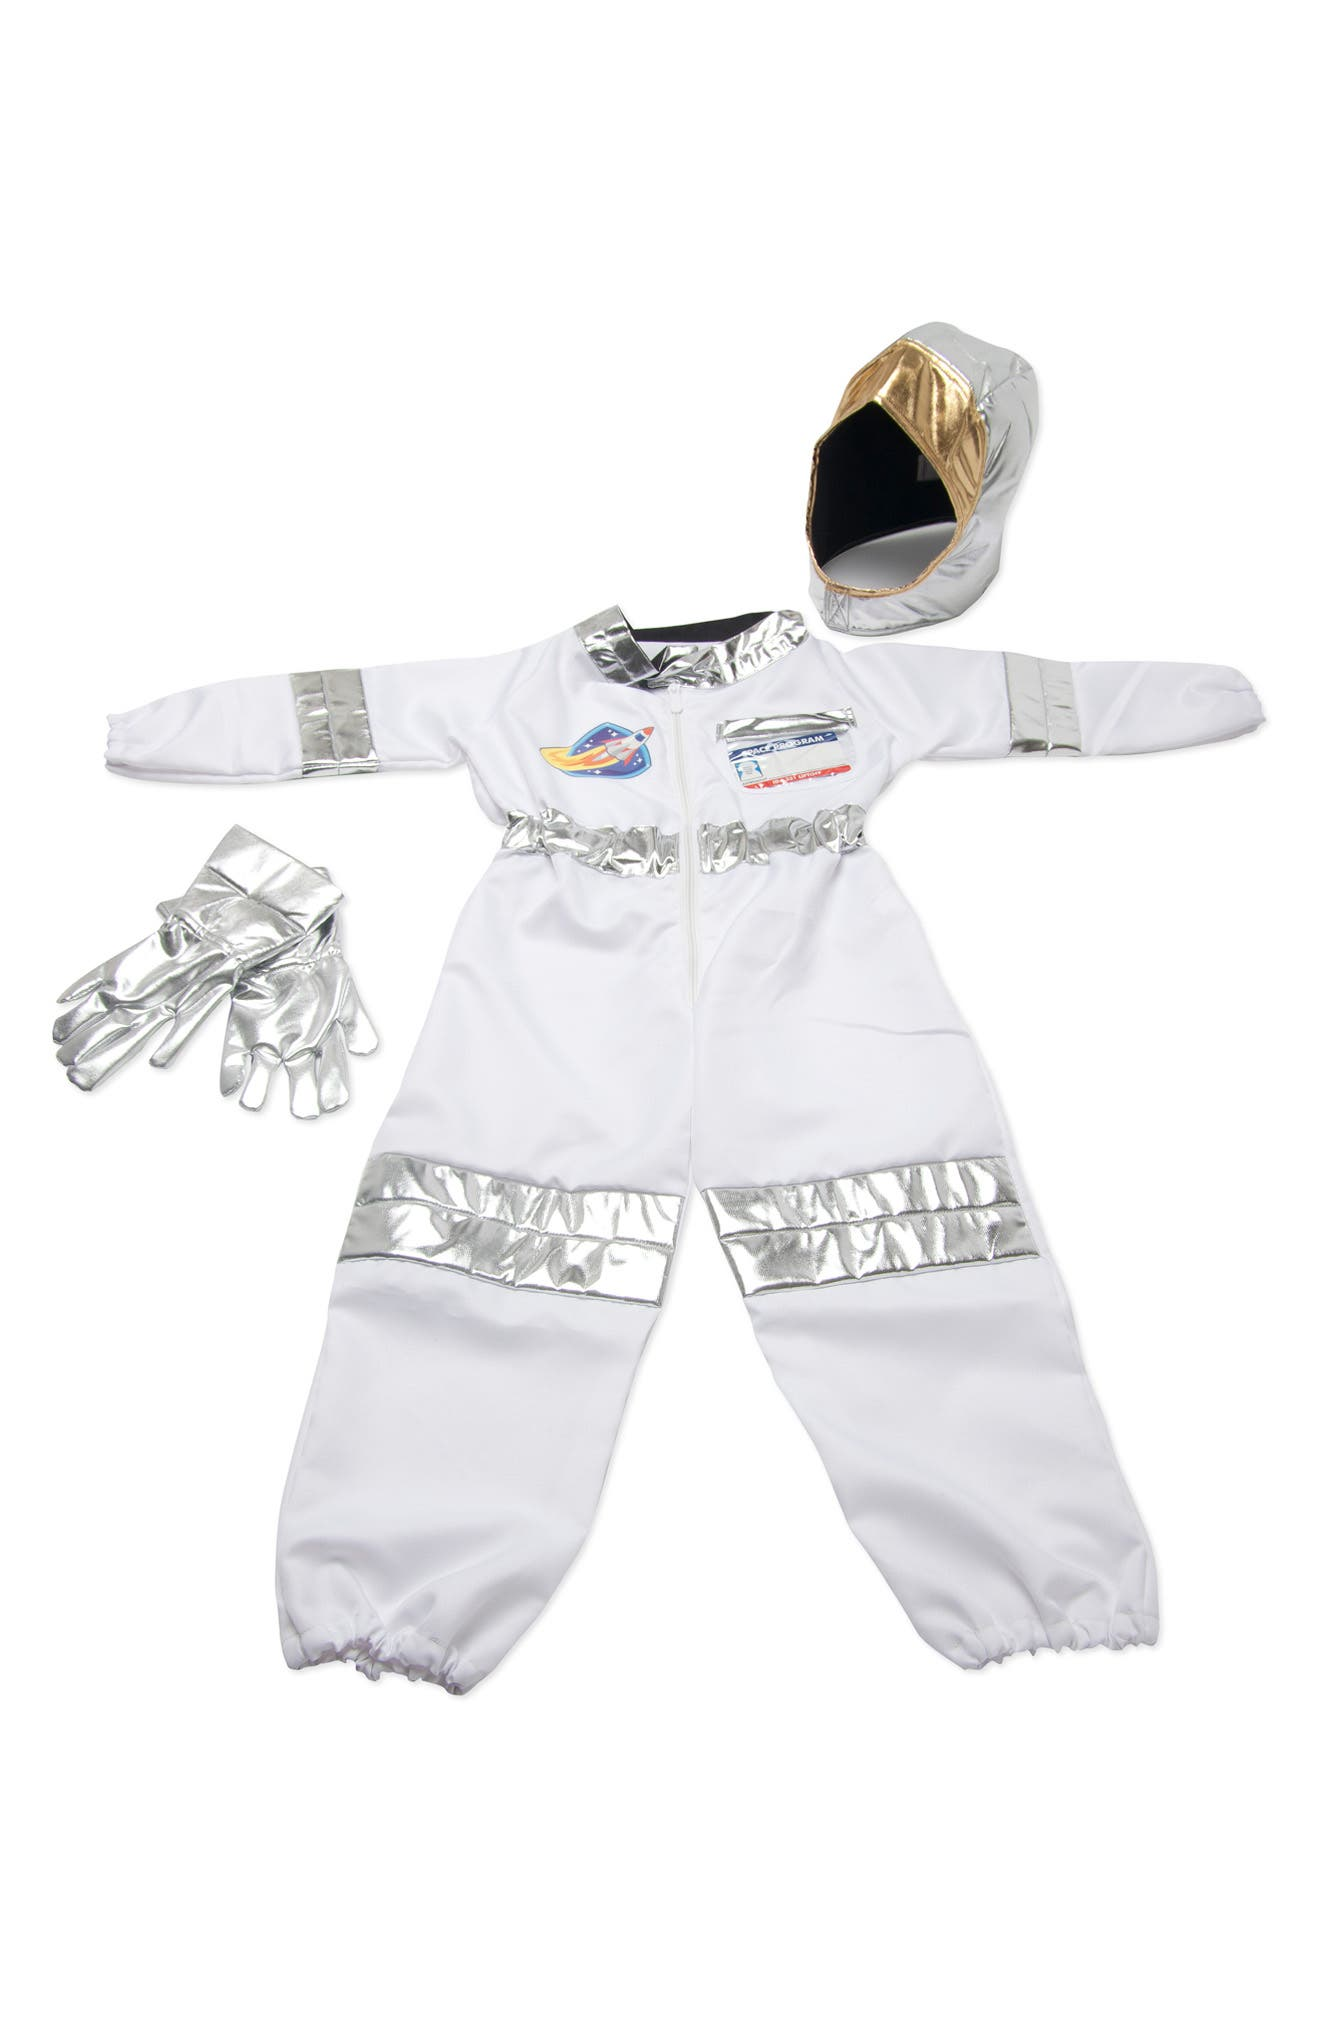 Astronaut Role Play Set,                             Main thumbnail 1, color,                             040